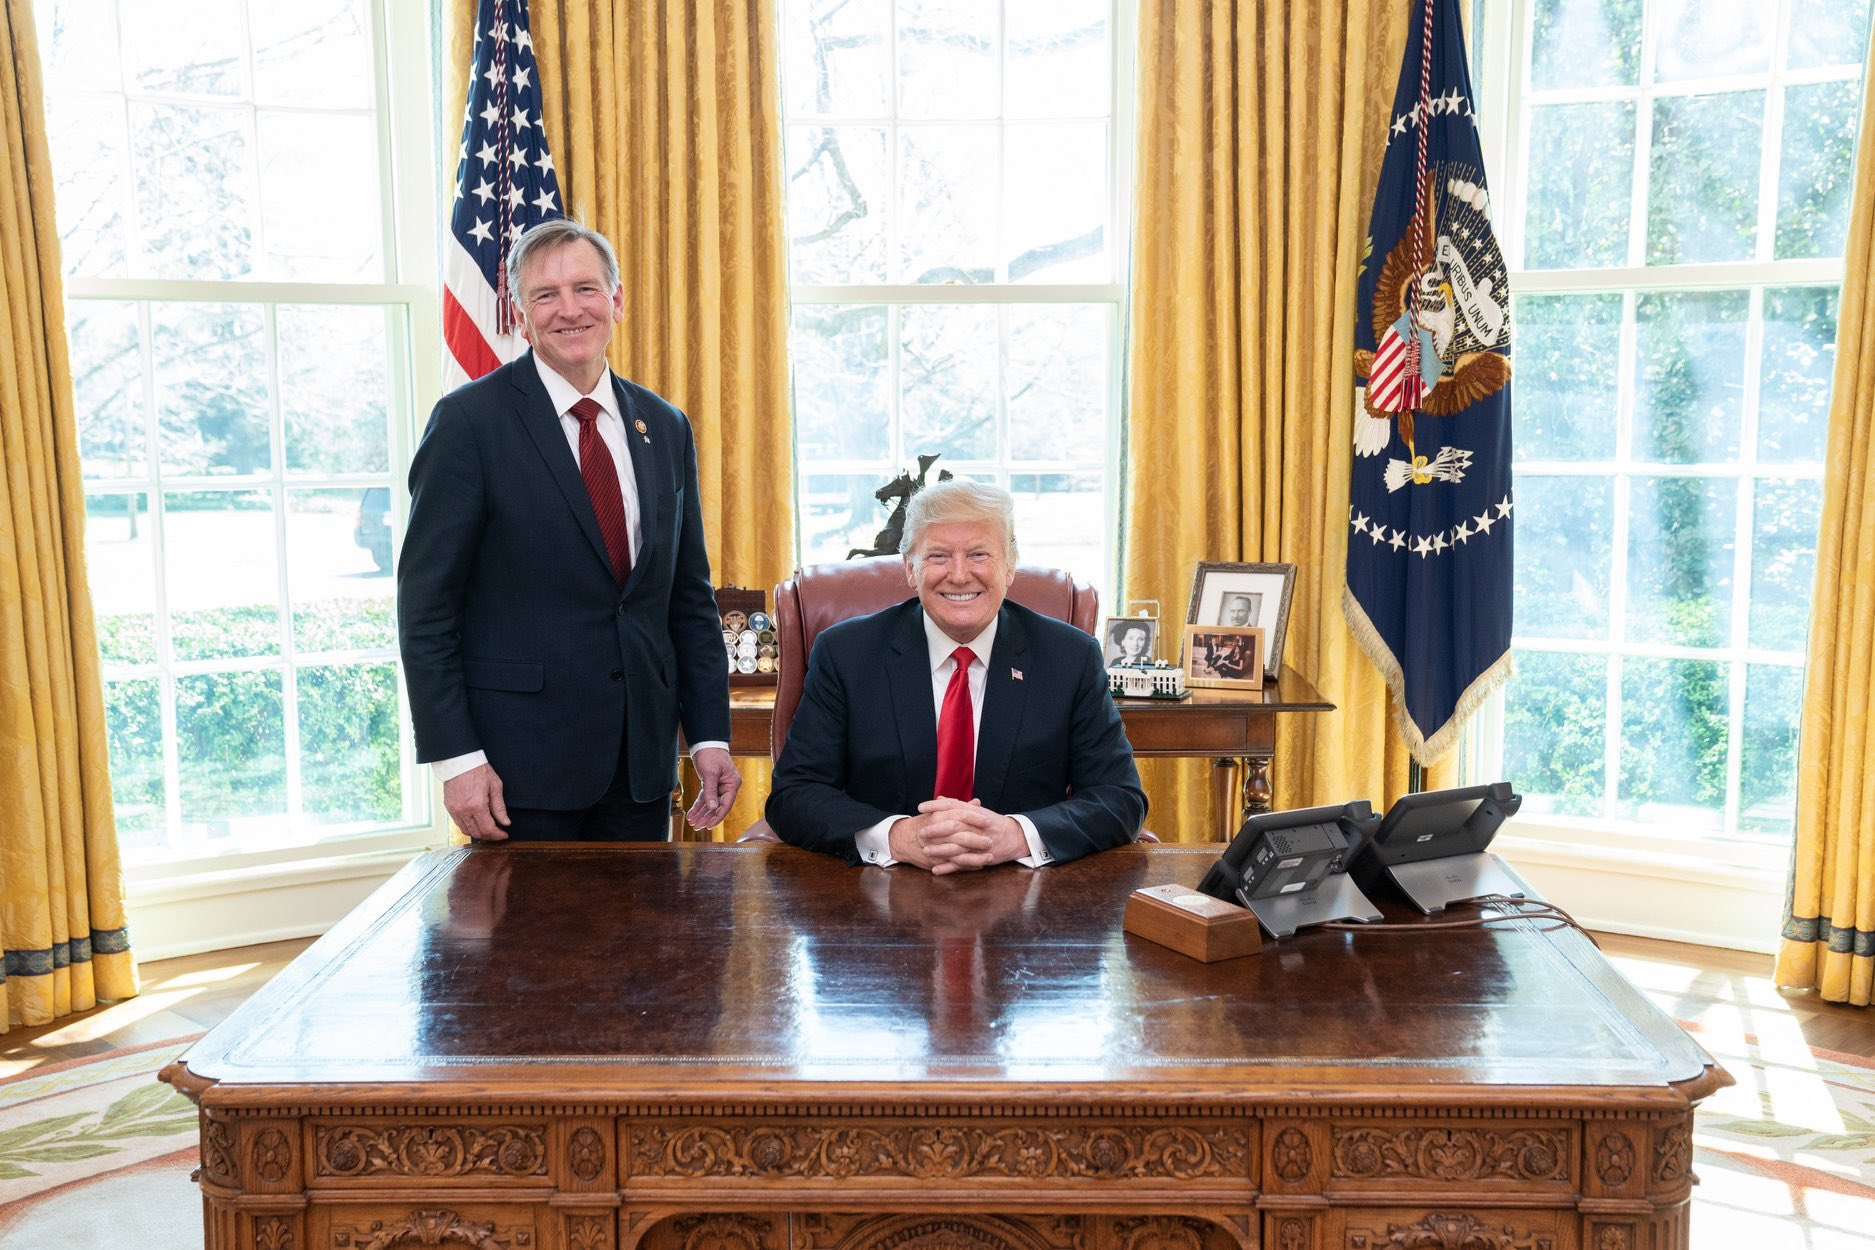 File:Paul Gosar with Donald Trump.jpg - Wikimedia Commons